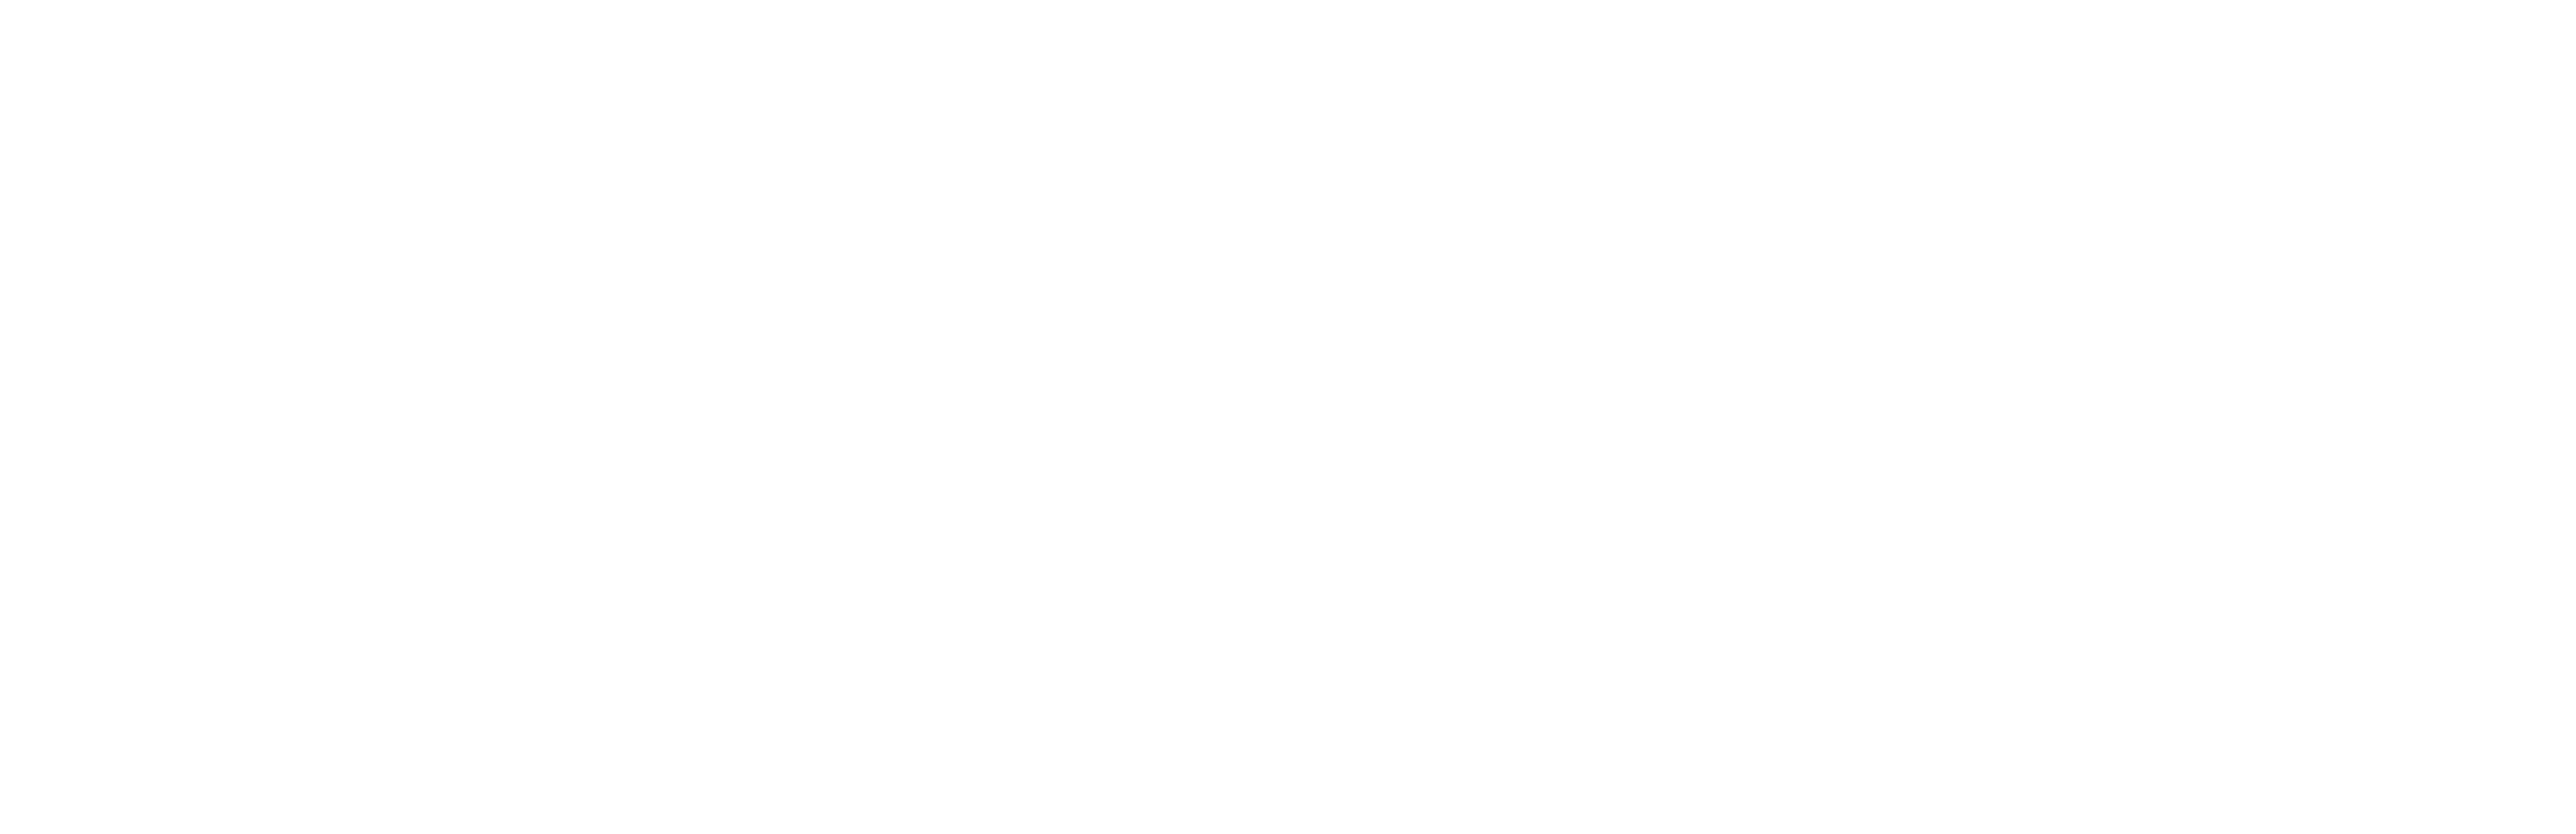 University of New Mexico Foundation